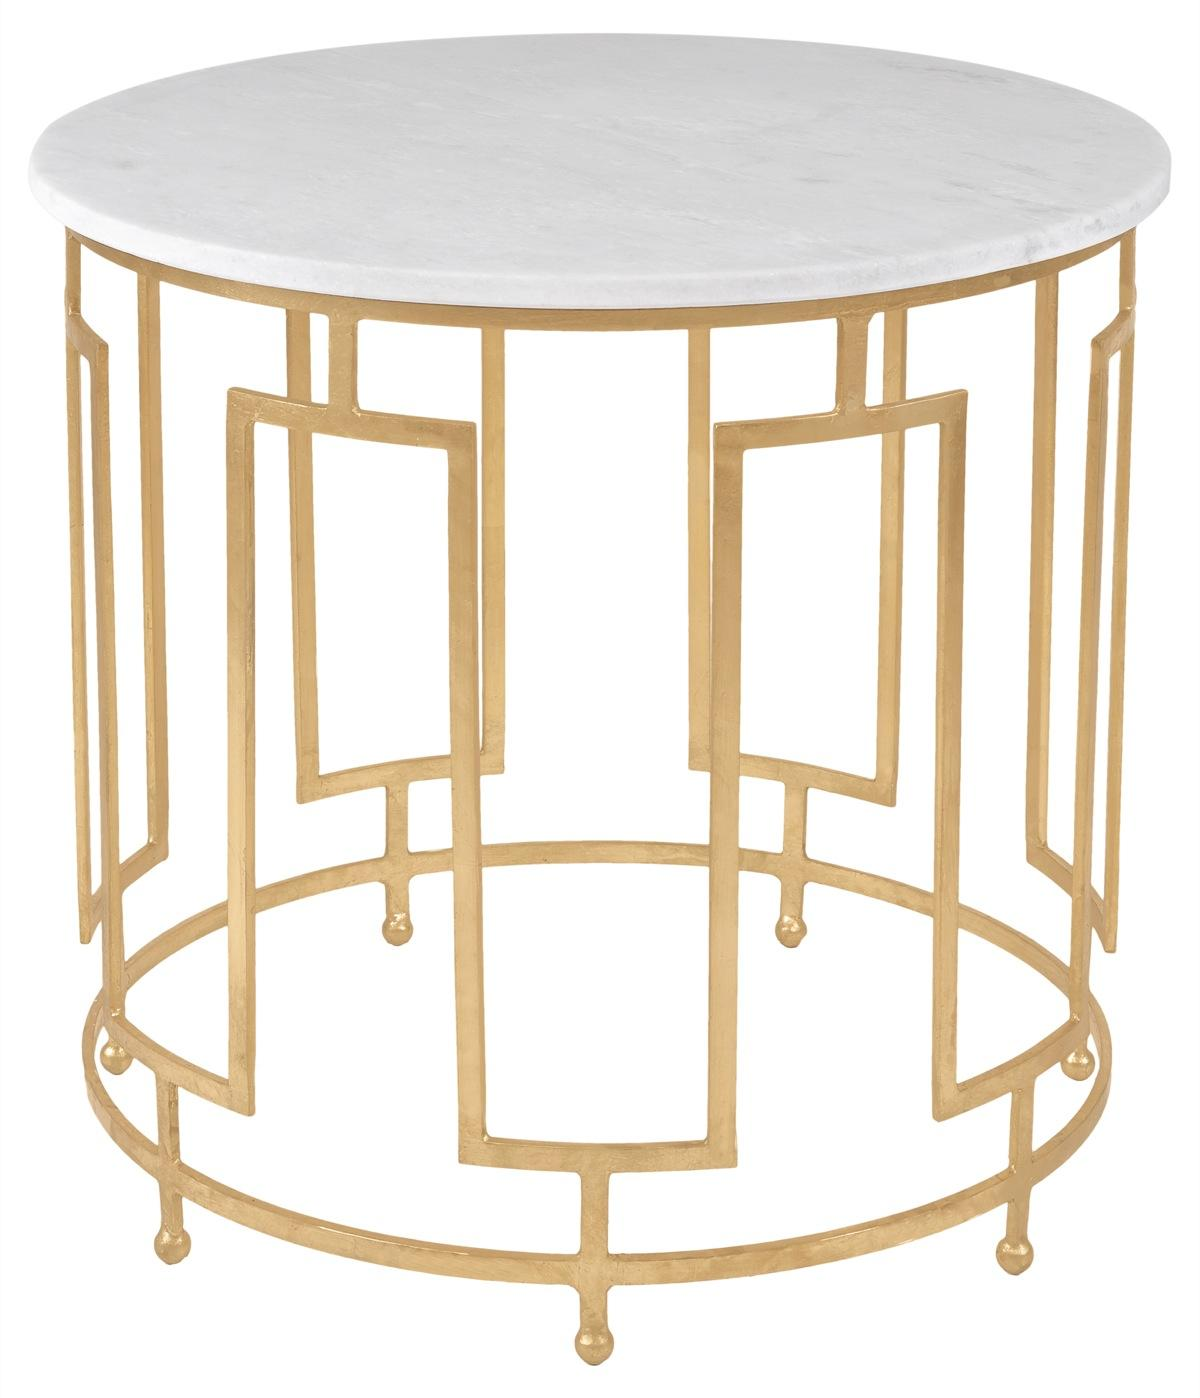 safavieh front white marble accent table small bedside lamp shades ashley stewart furniture screen porch round side cloth restoration hardware sectional tablecloth for large